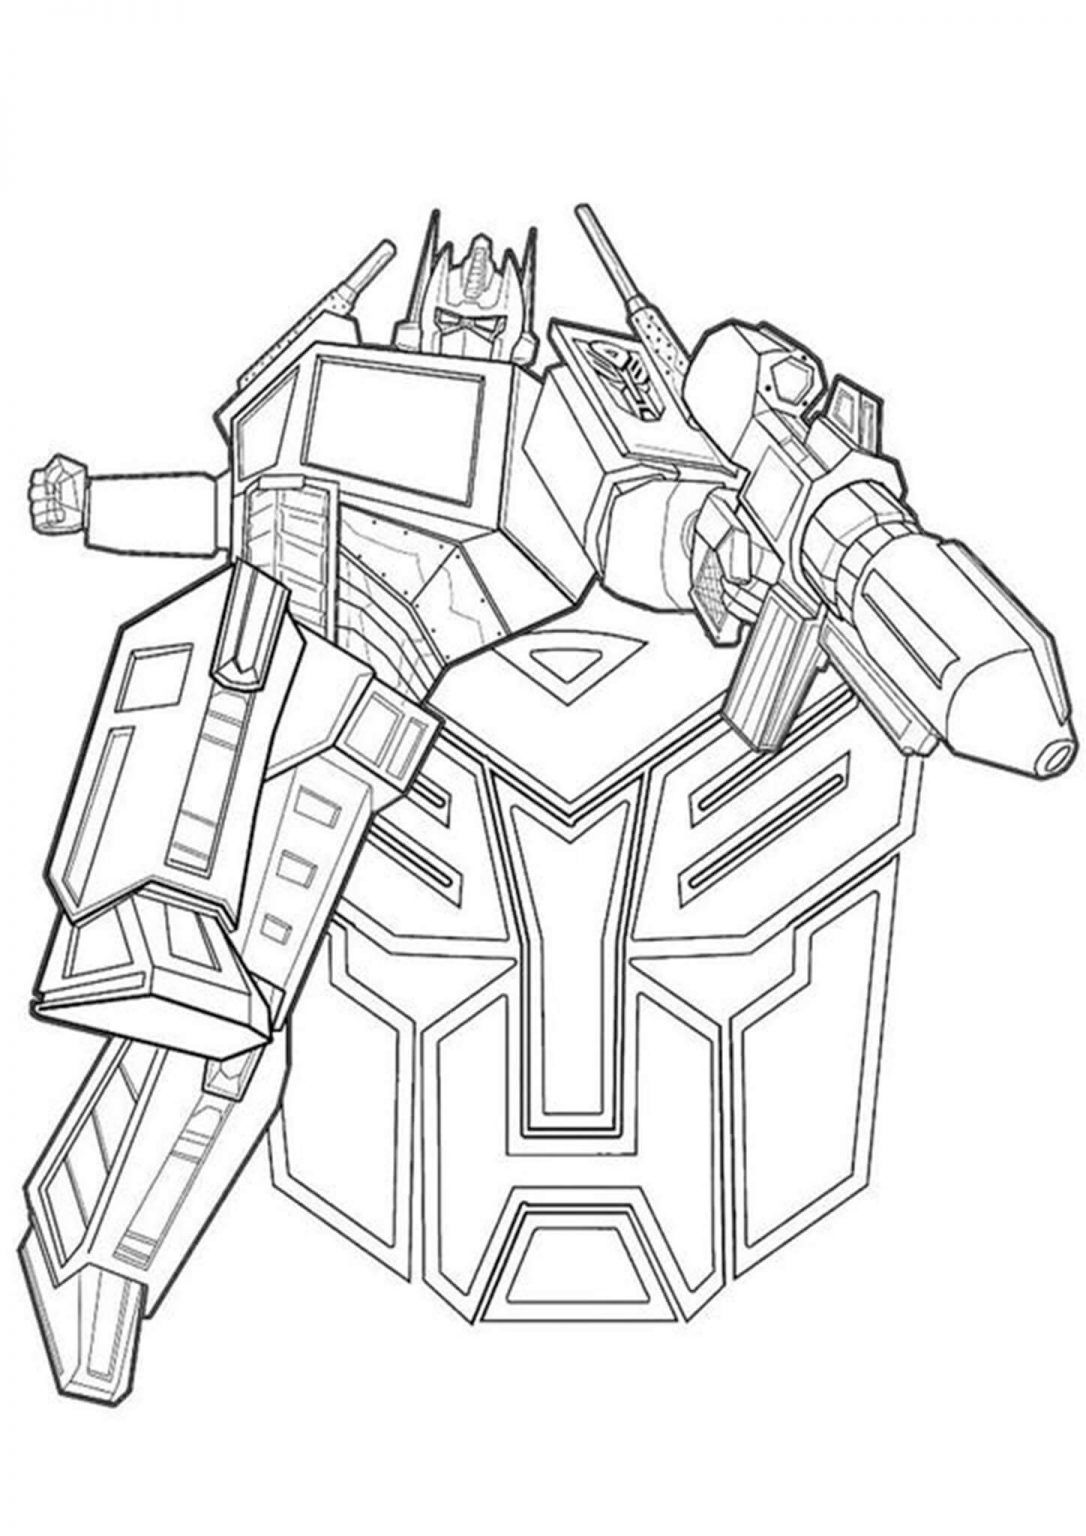 Free Easy To Print Transformers Coloring Pages Transformers Coloring Pages Disney Coloring Pages Cartoon Coloring Pages